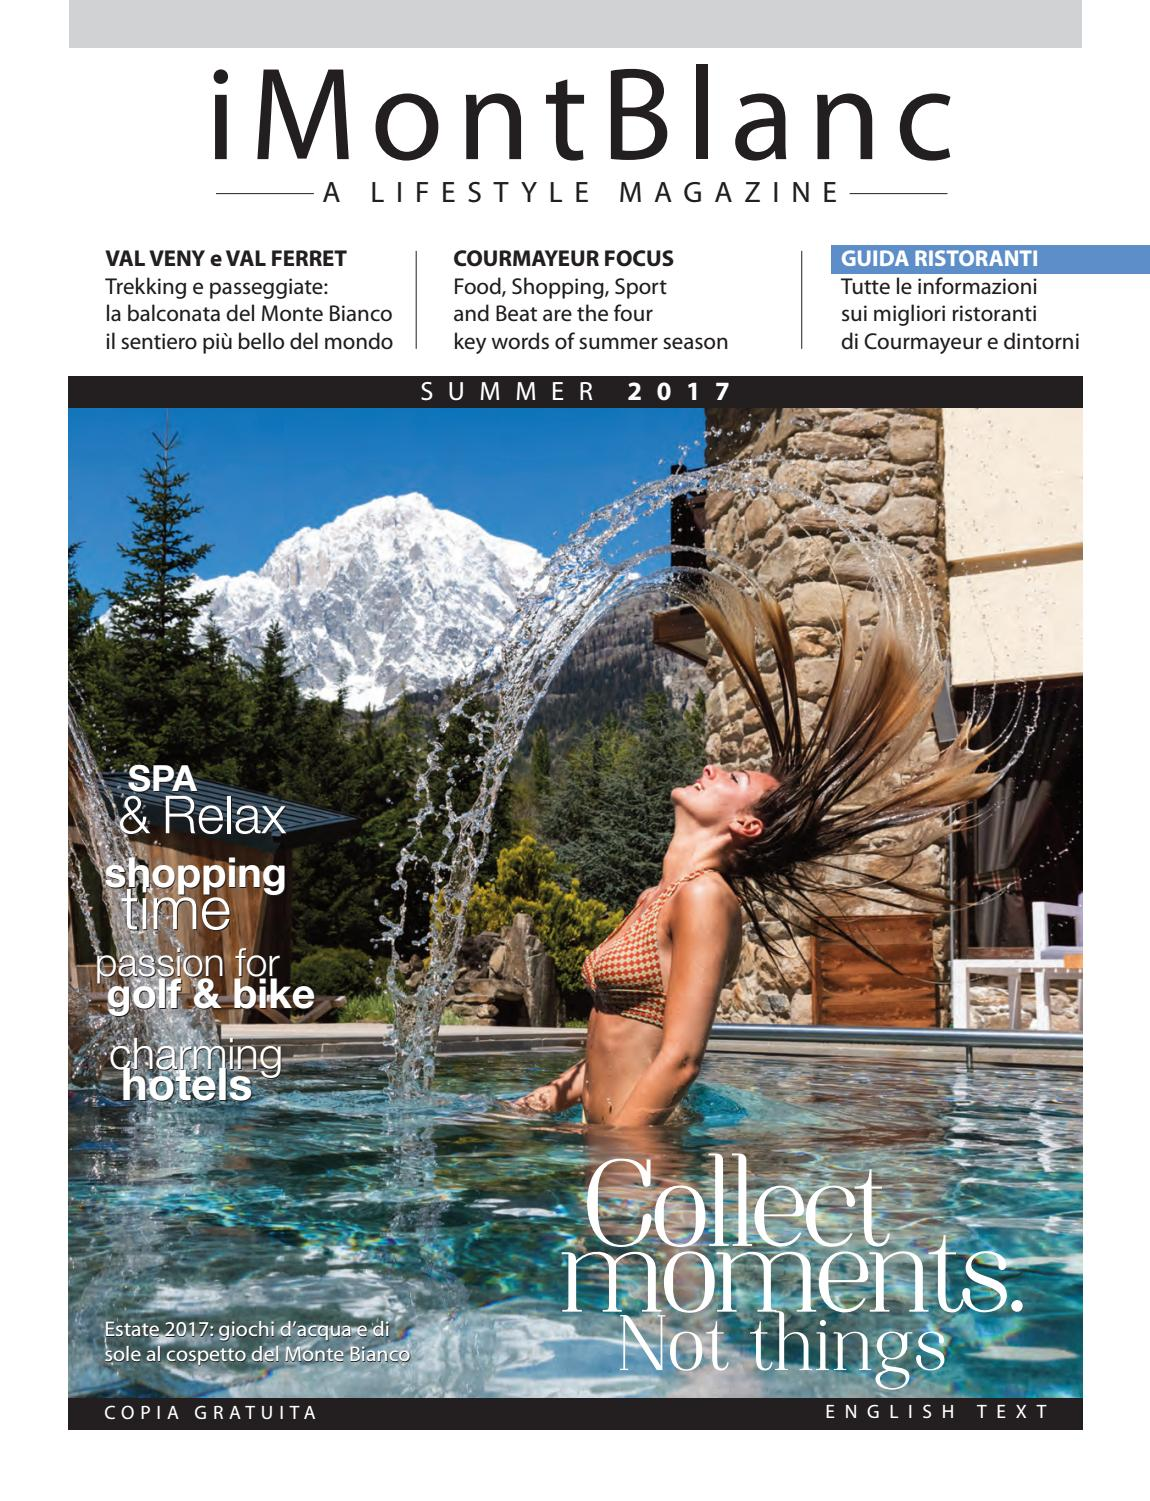 Imontblanc Magazine Summer 2017 Courmayeur By Gianluca Martinelli